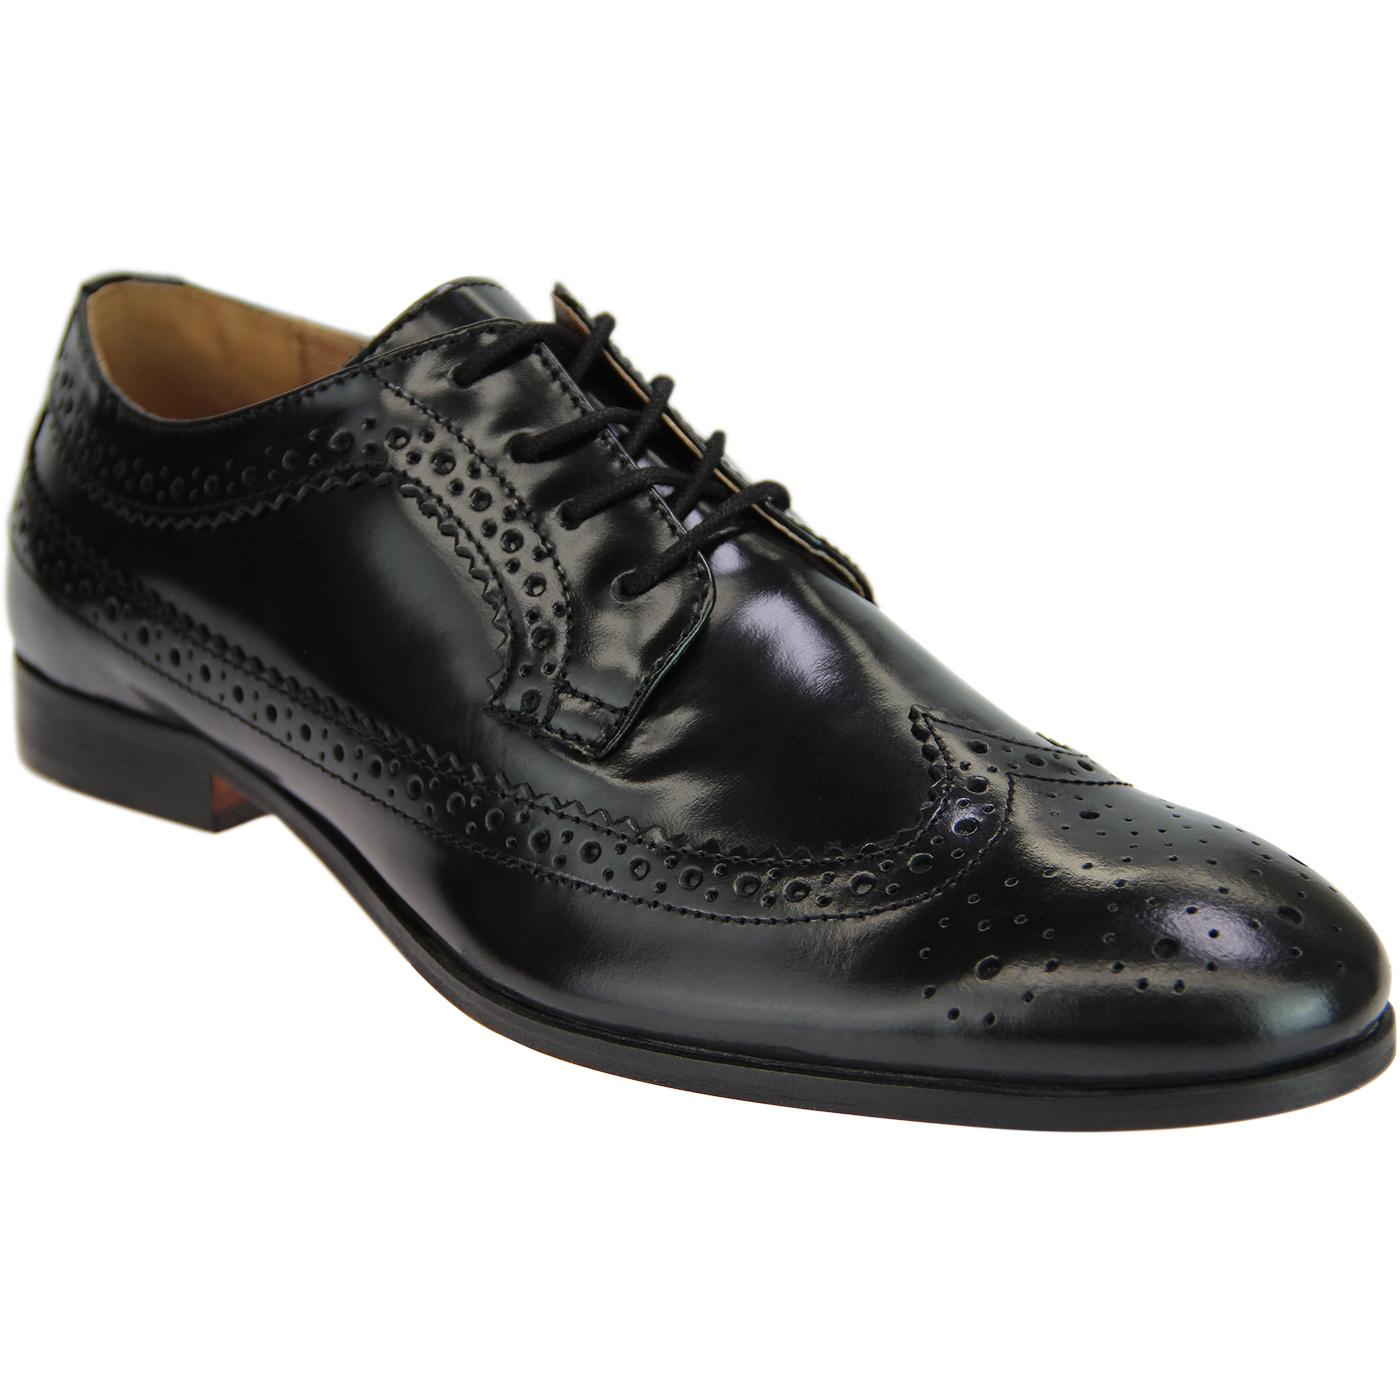 Crowthorne HUDSON 60s Mod Leather Brogues (Black)